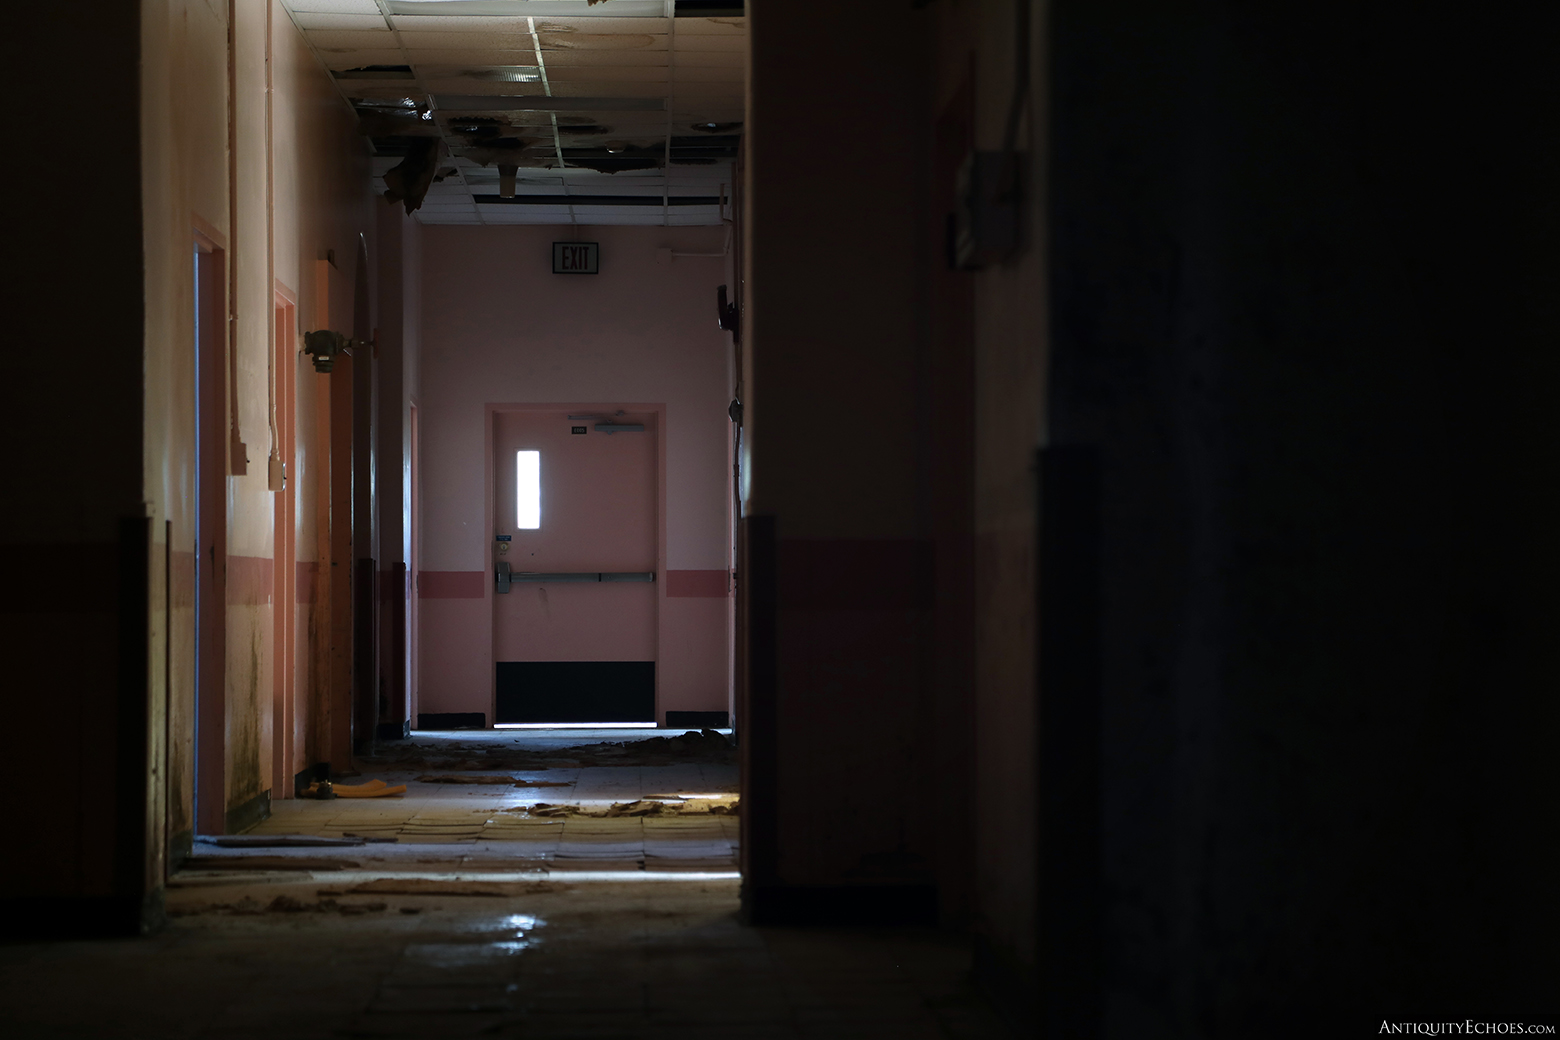 Allentown State Hospital - Decay in the Halls